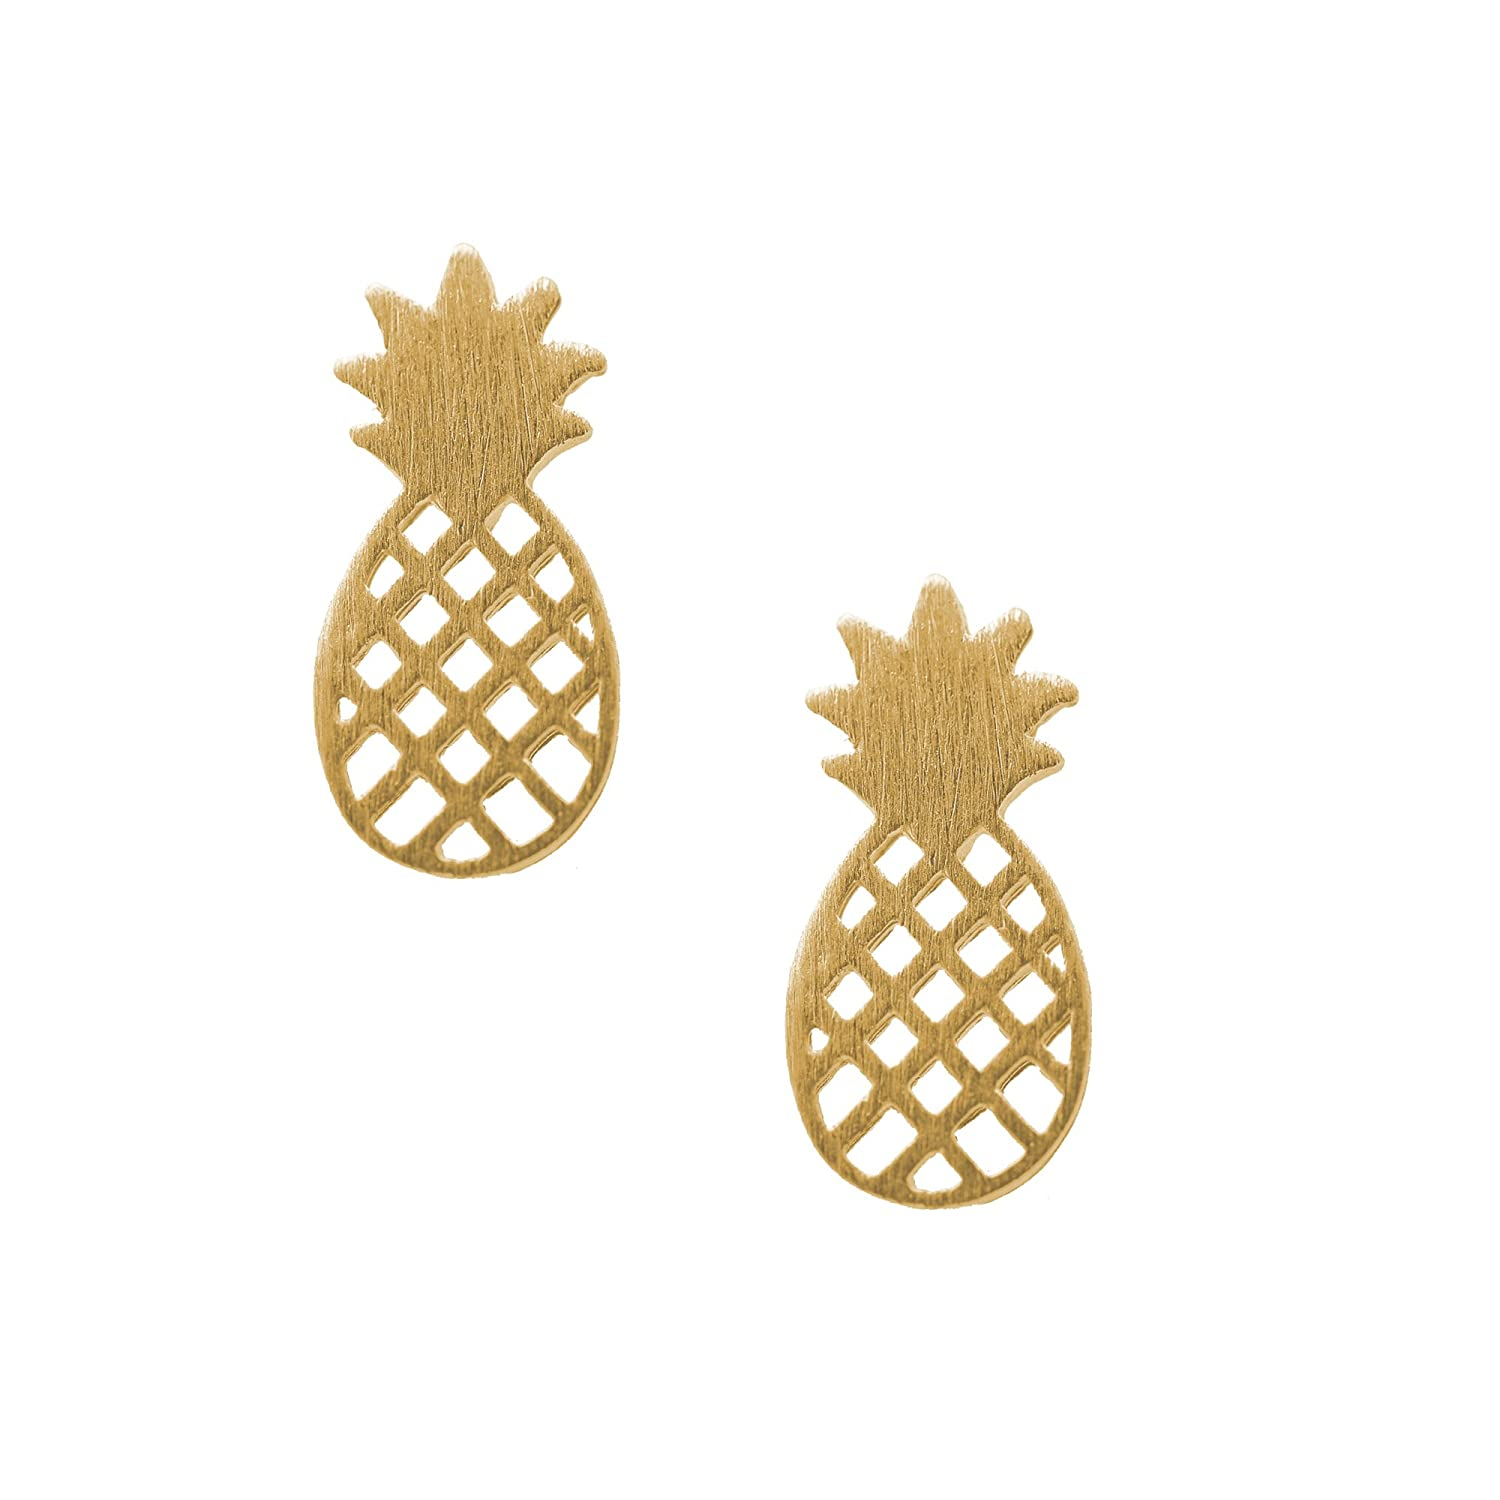 Amazon: Spinningdaisy Handcrafted Brushed Metal Cute Pineapple Stud  Earrings Gold: Jewelry